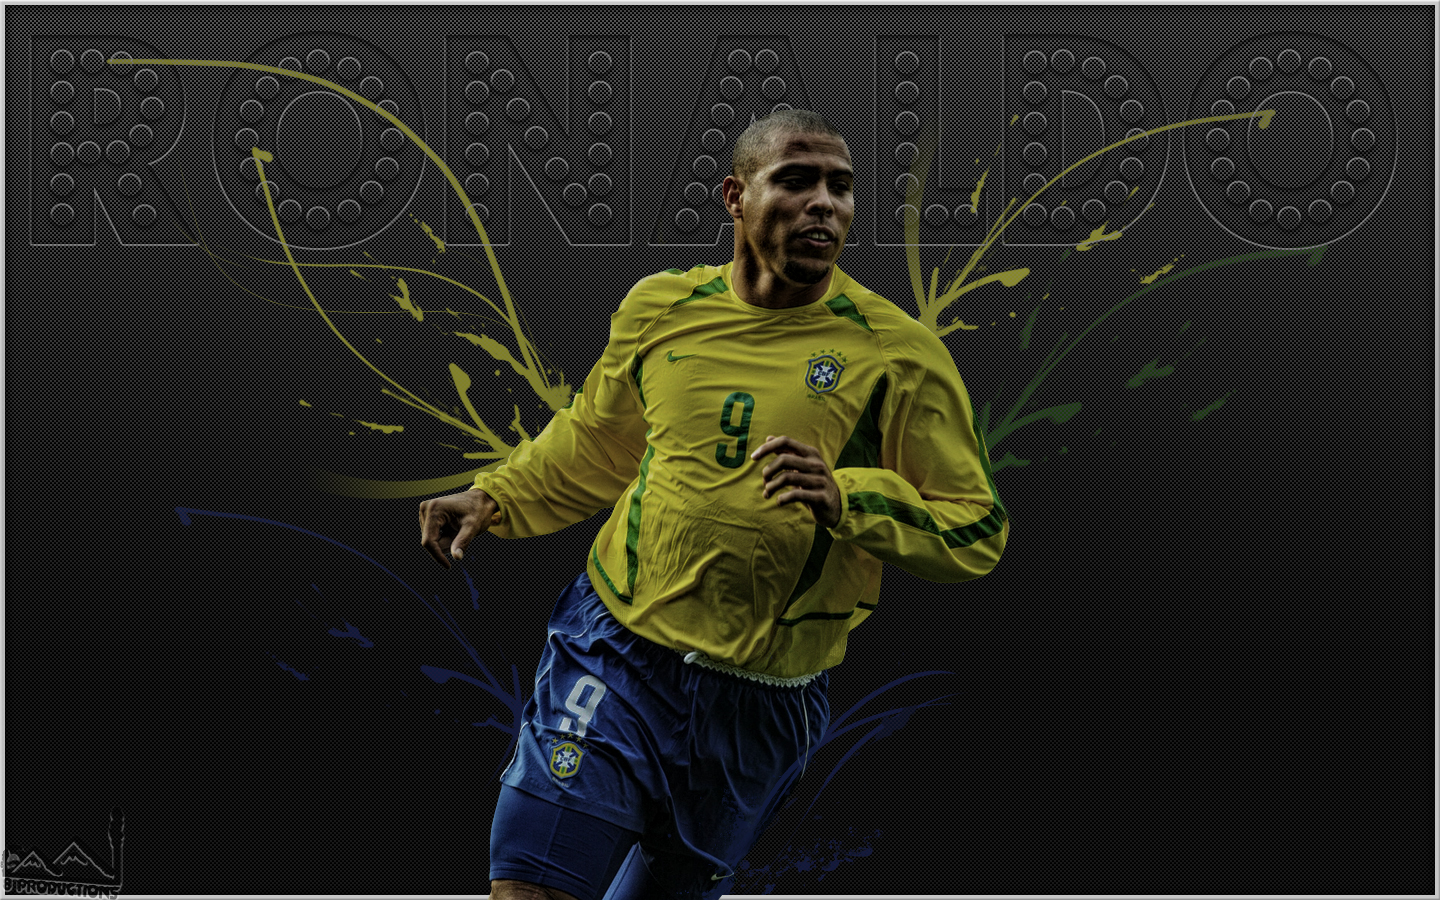 Productions: Ronaldo Brazil wallpaper